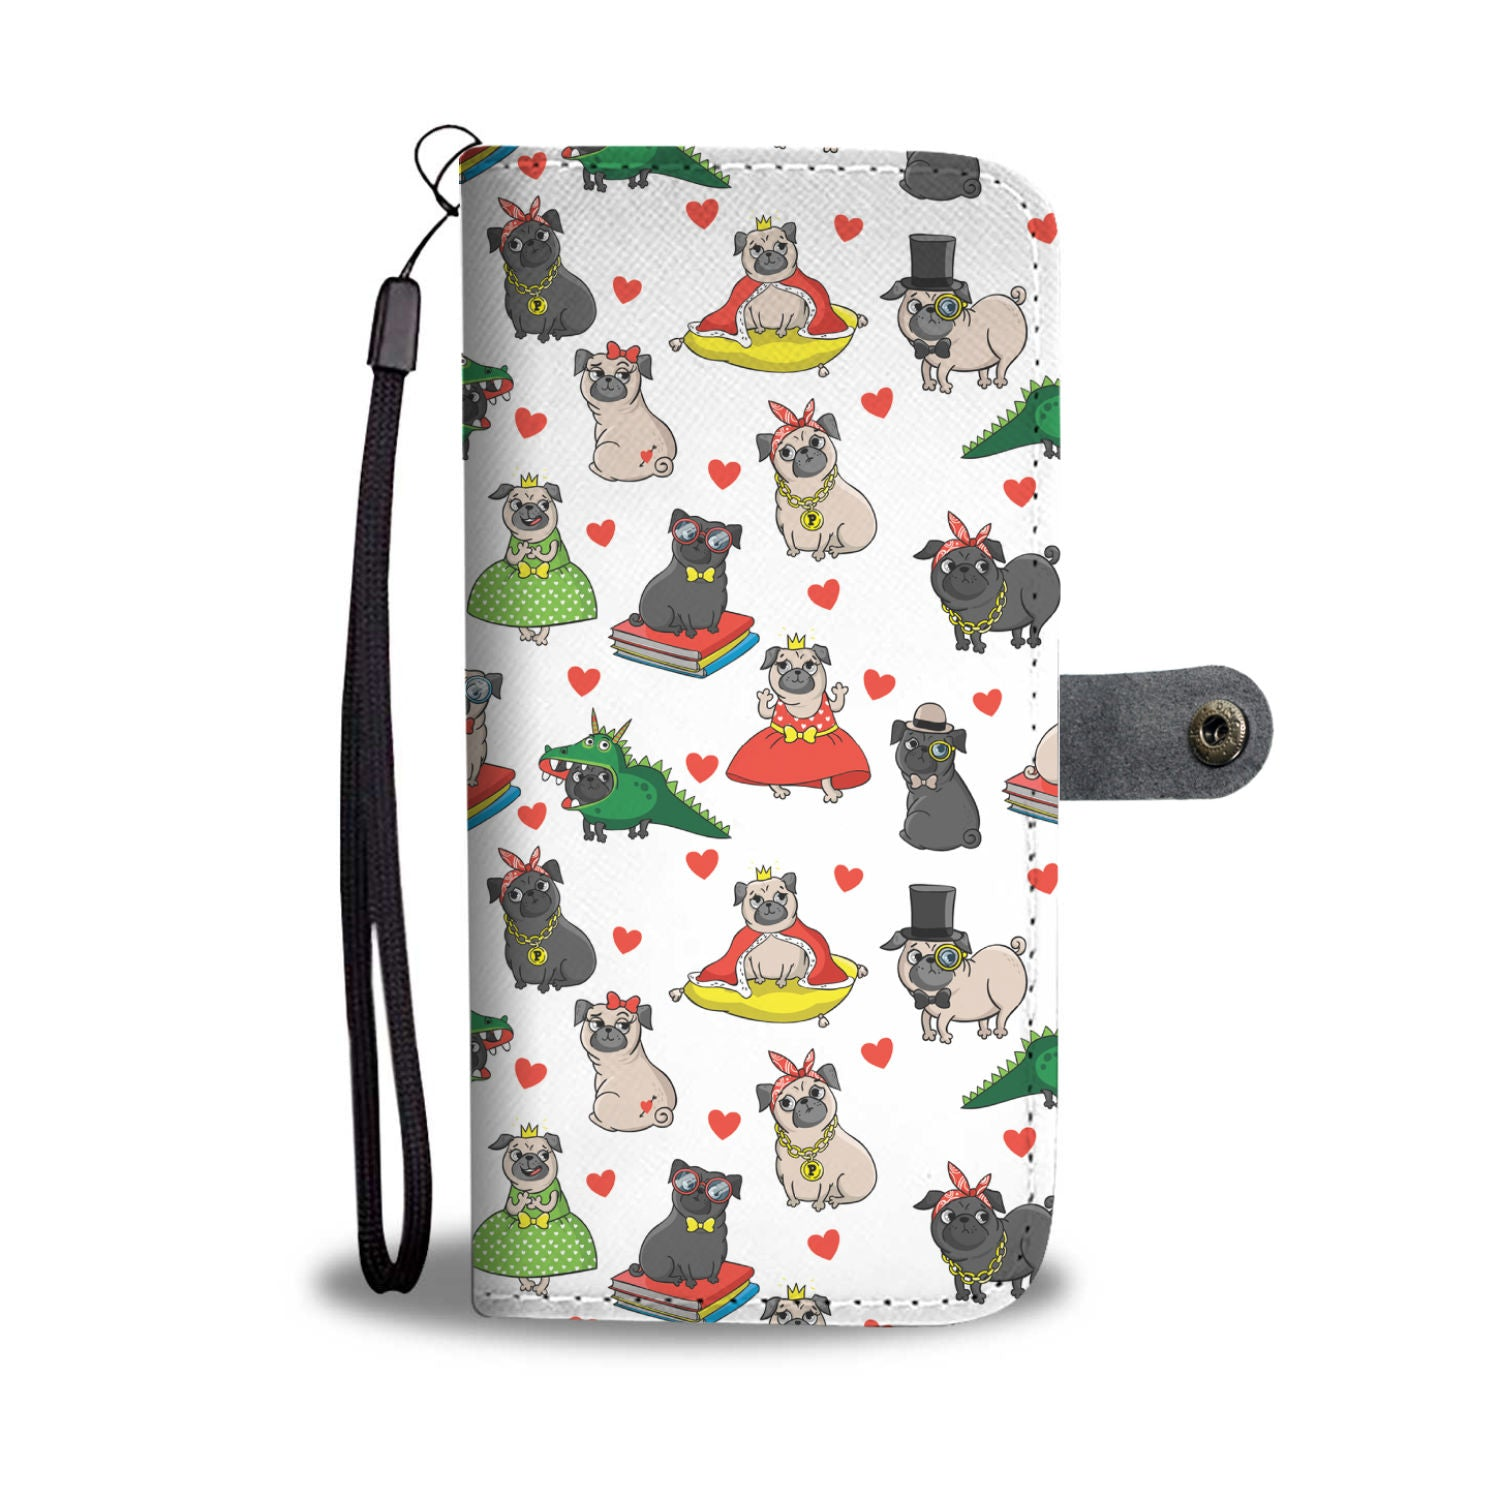 Pugs In Costume Wallet Phone Case - pug bestseller